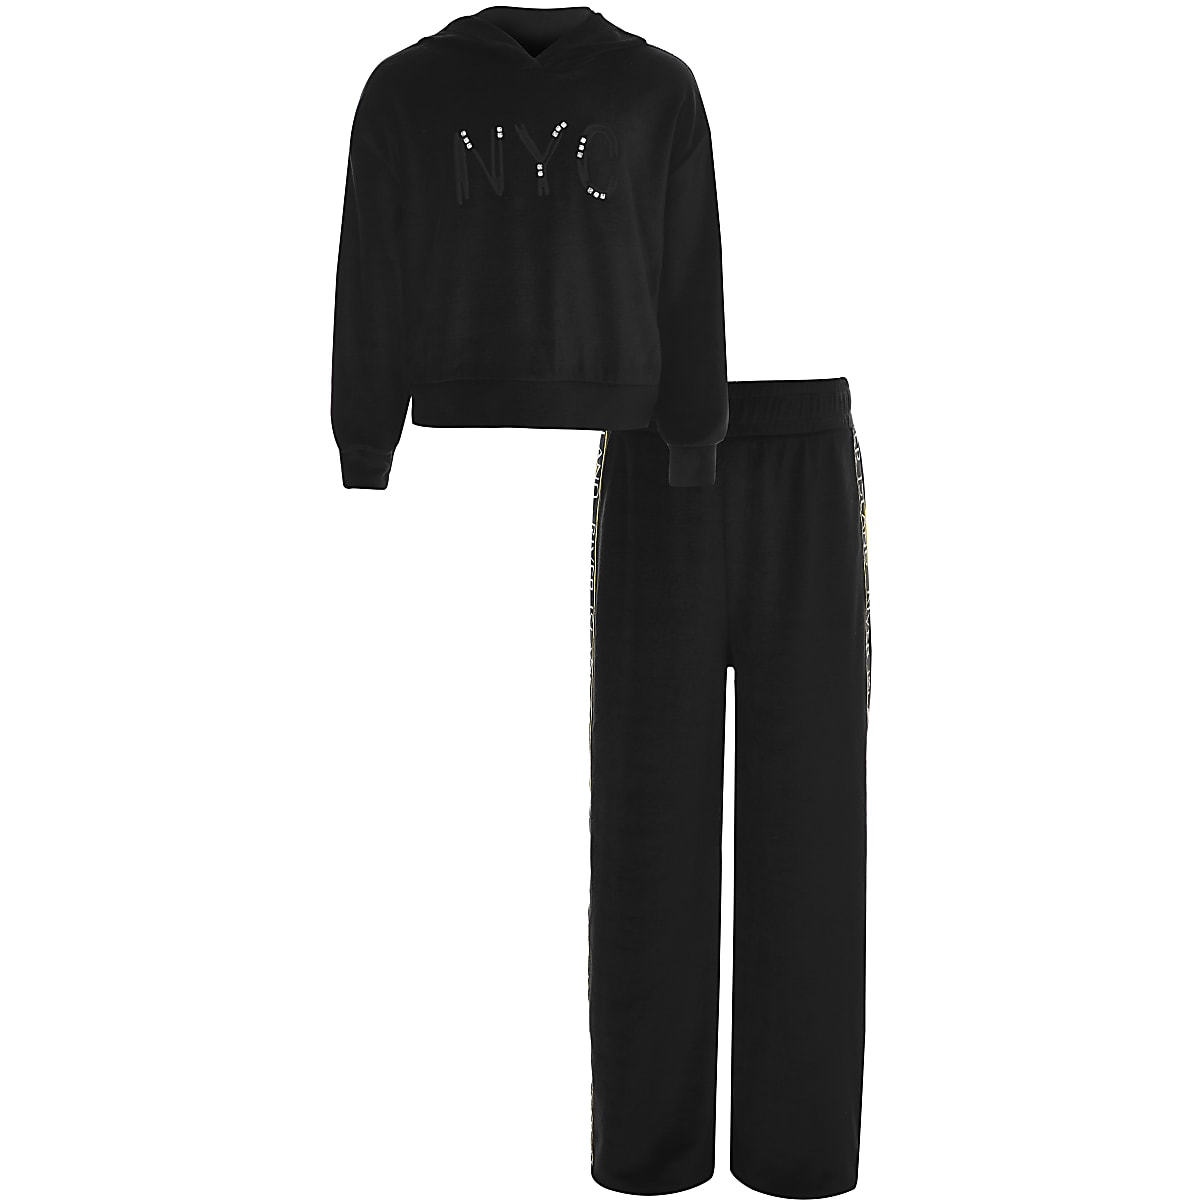 Girls black 'NYC' velvet RI jogger outfit